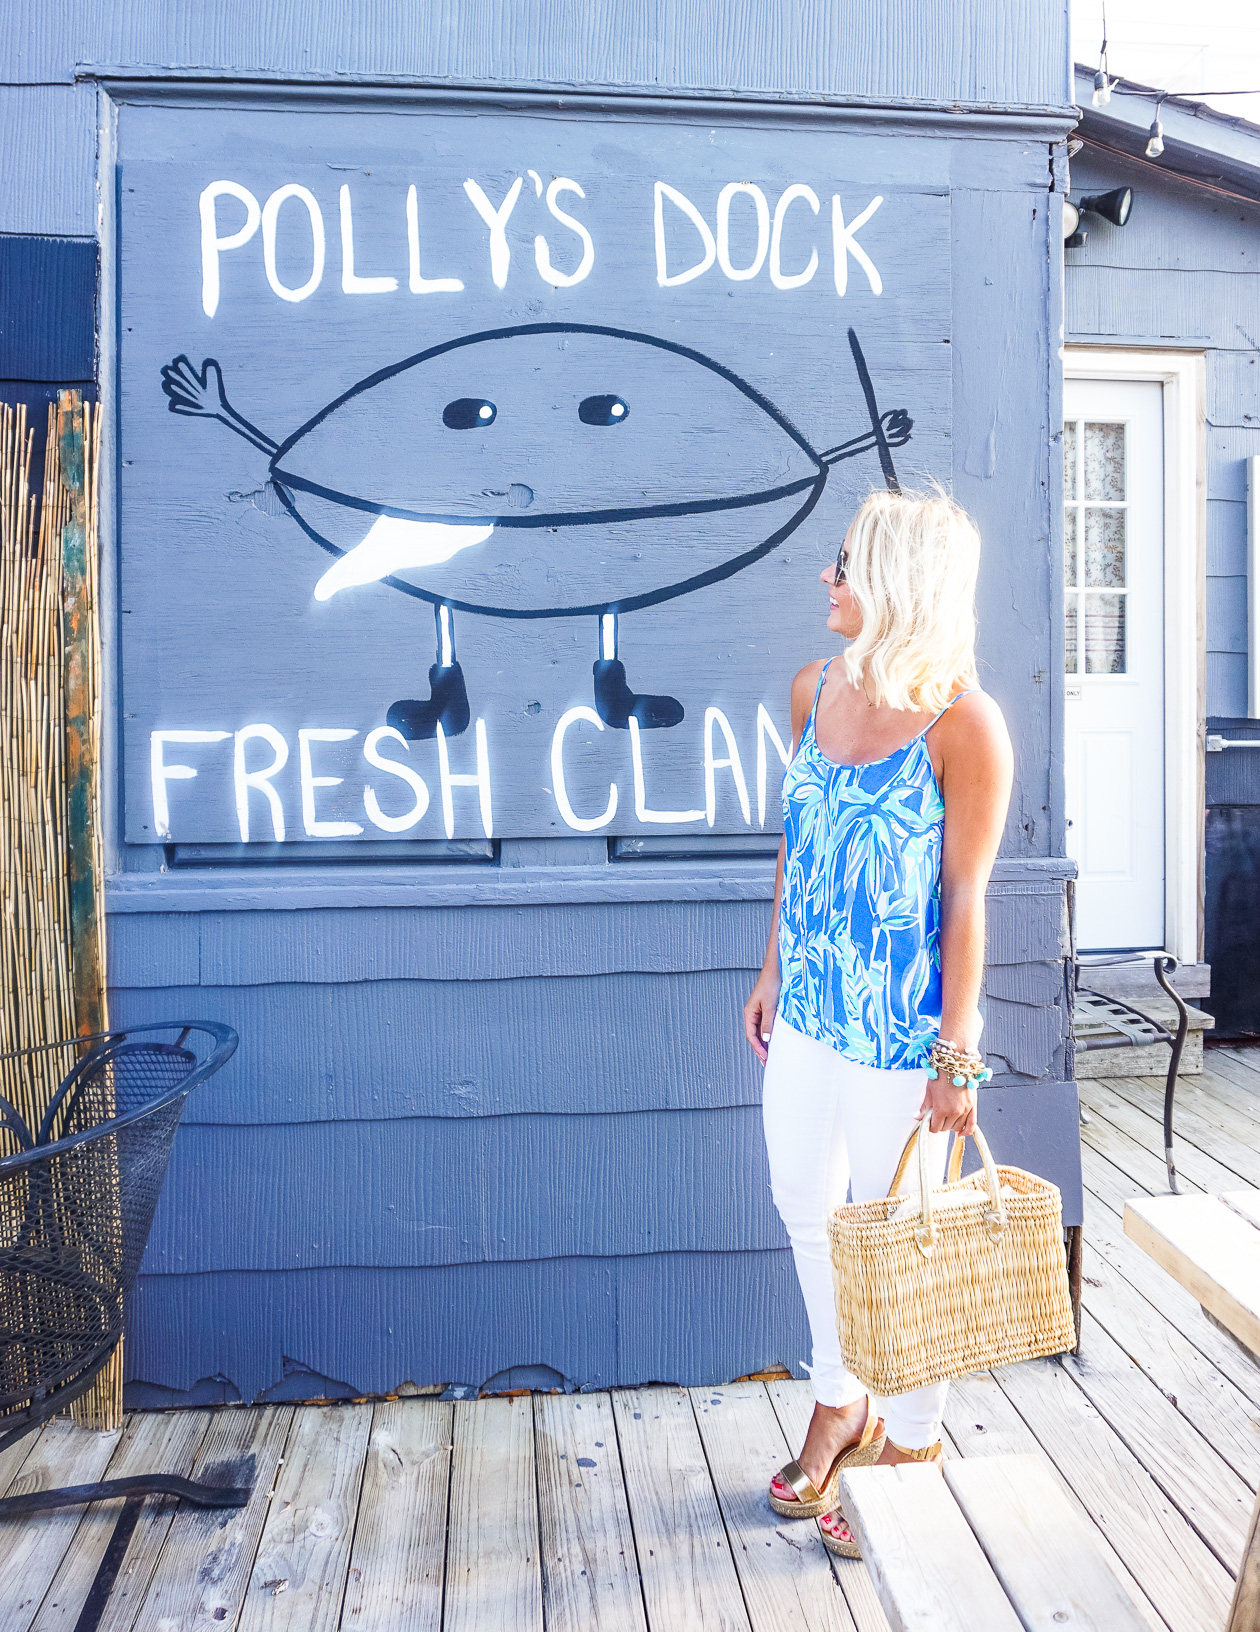 Coco and Duckie fiesta pom pom bracelet and Lilly Pulitzer tank top in Long Beach Island, NJ